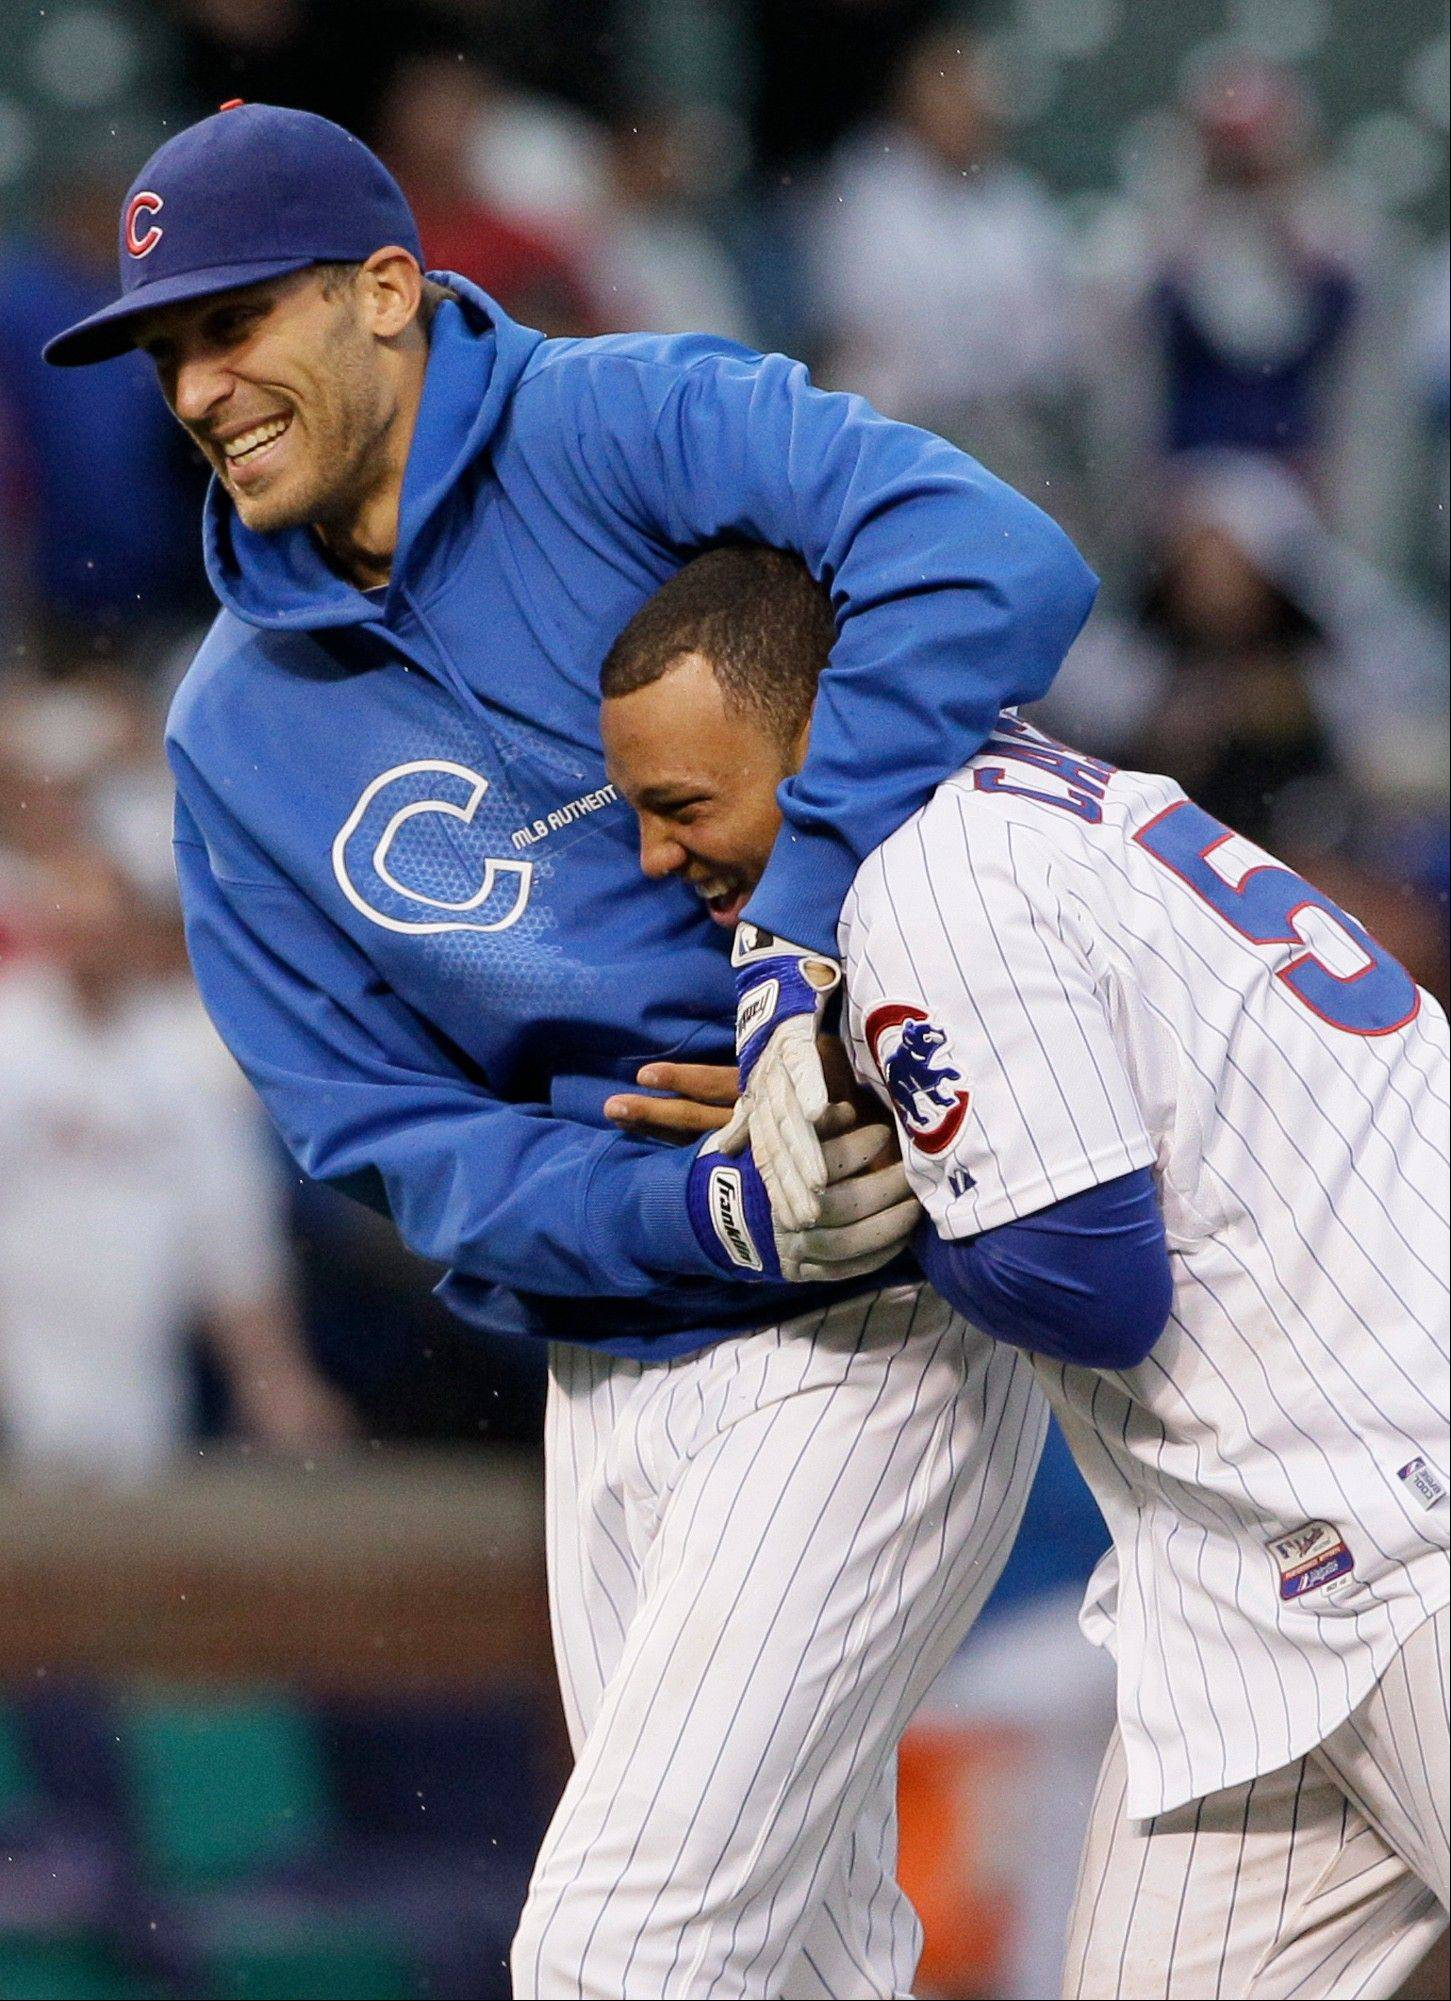 Chicago Cubs' Welington Castillo, right, celebrates with Matt Garza after the Cubs defeated St. Louis Cardinals 5-4 after the 11th inning of a baseball game in Chicago, Friday, Sept. 21, 2012.